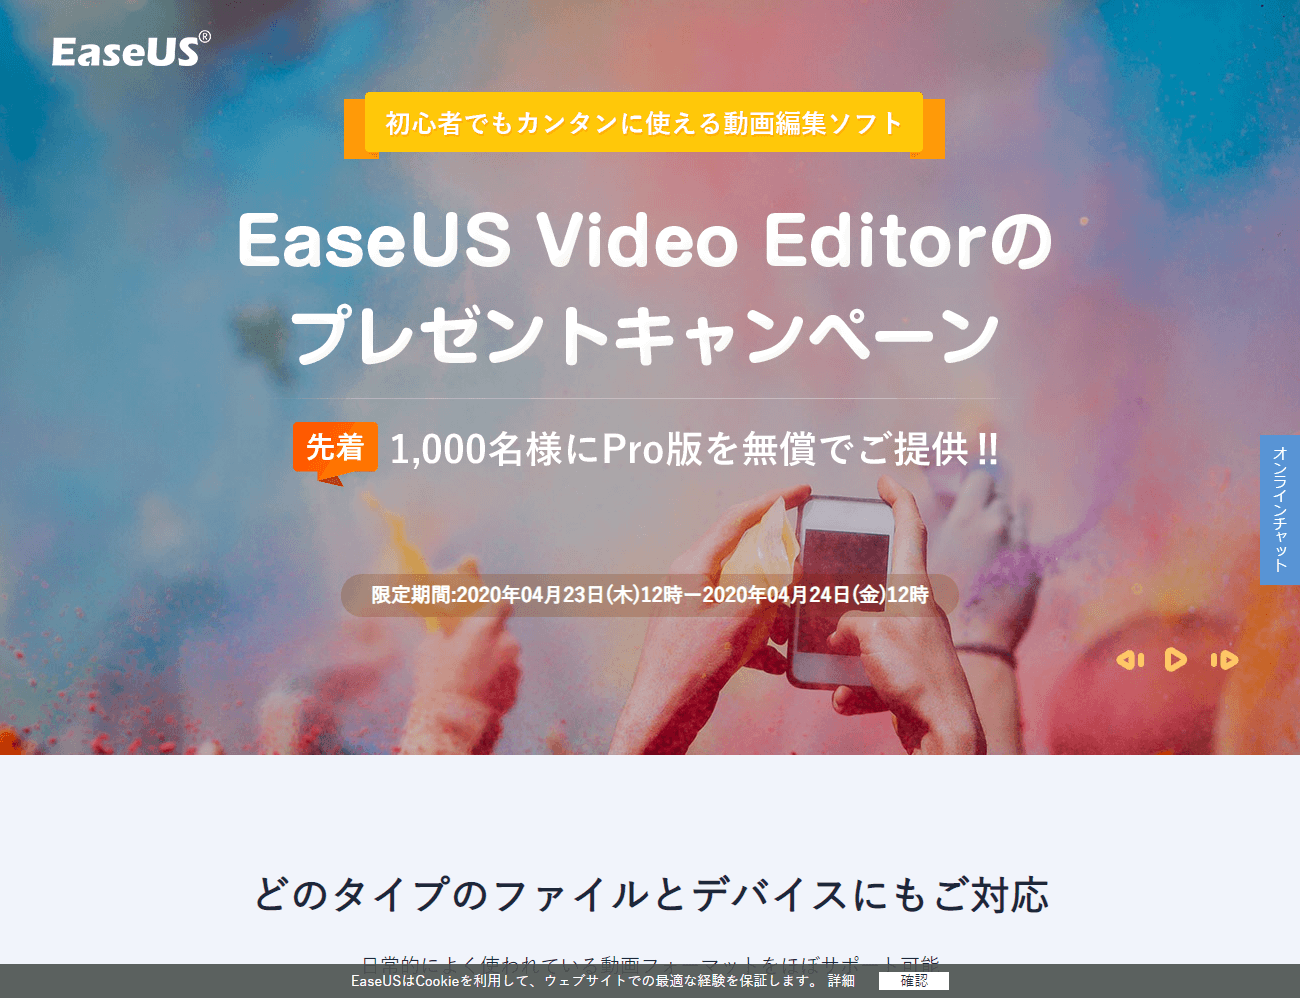 EaseUS Video Editor Pro - 無償配布キャンペーンページ